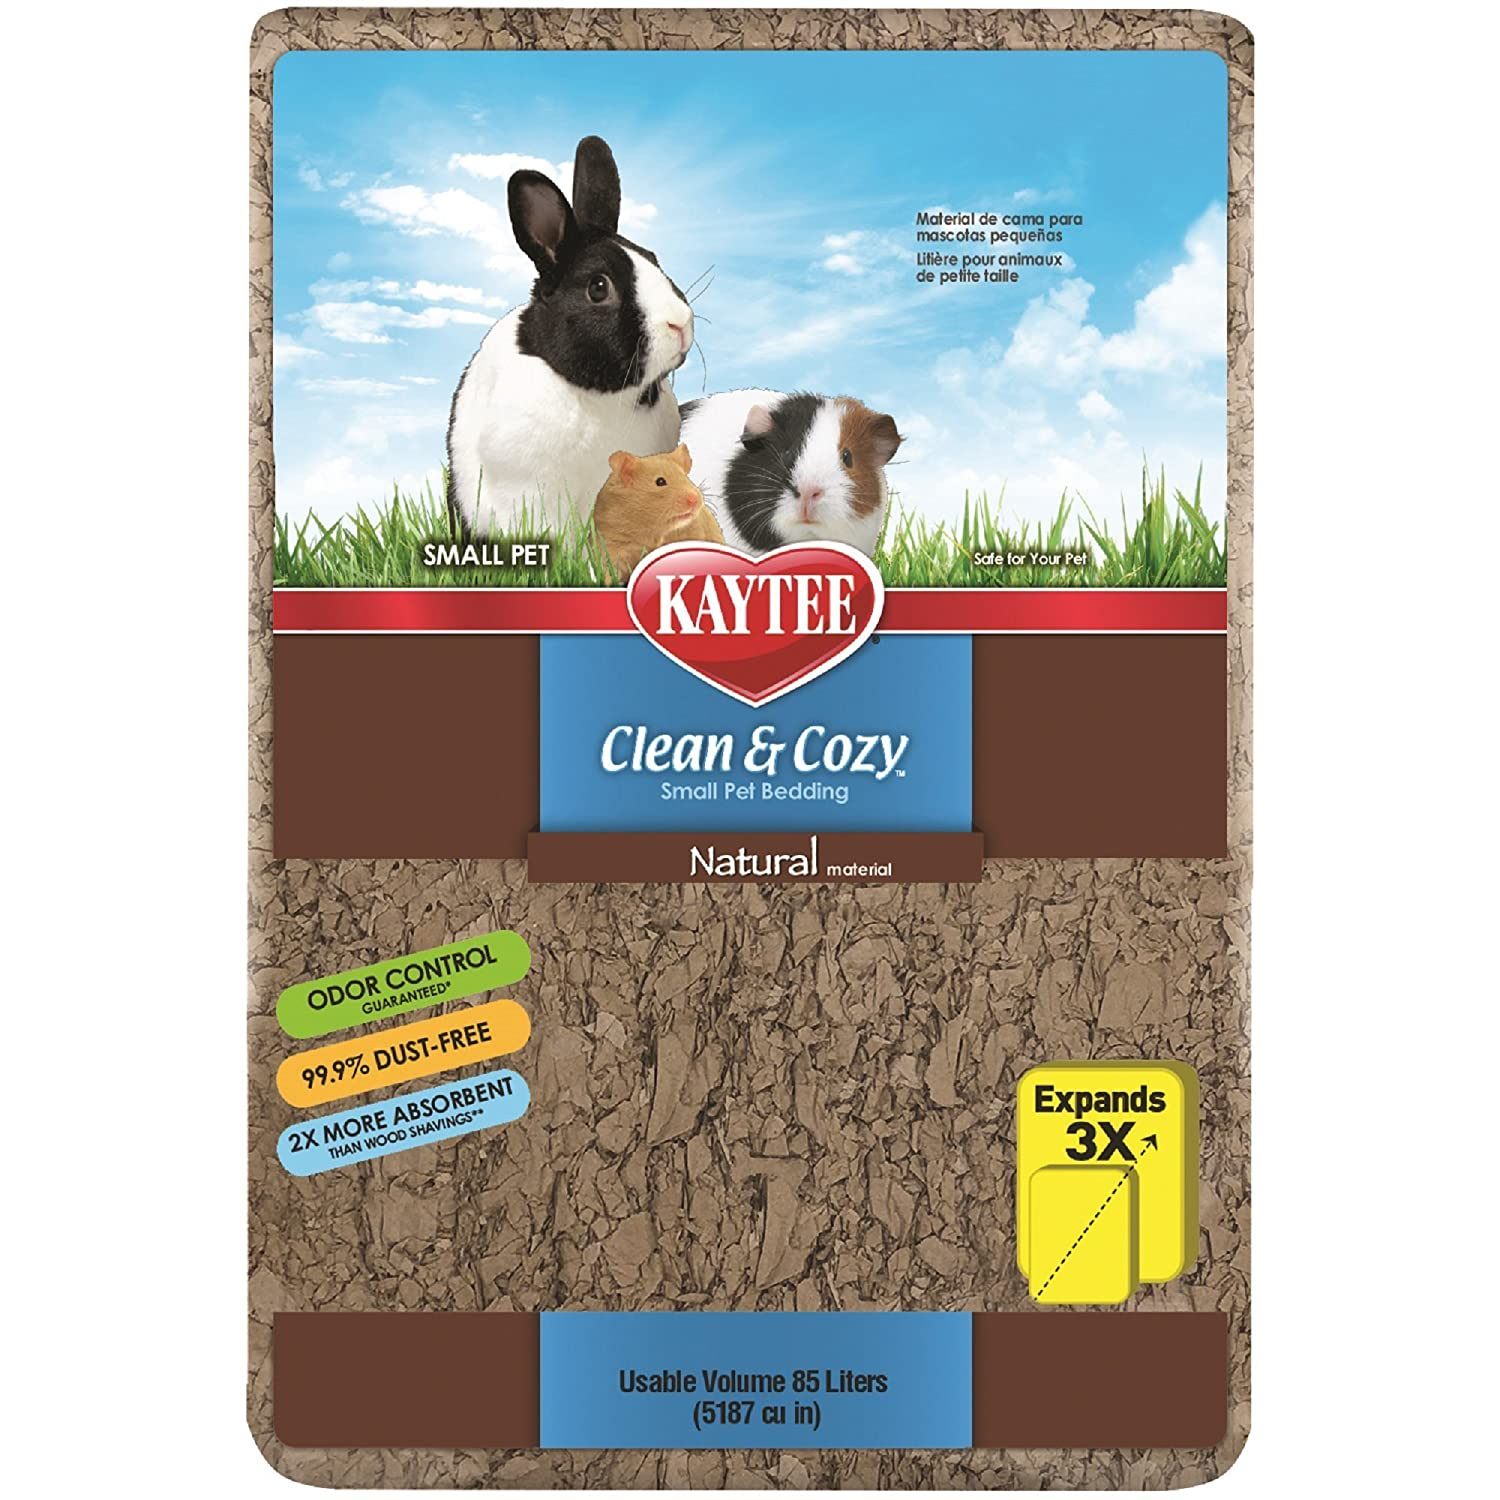 Kaytee Clean & Cozy Natural Pet Bedding 1728 Cubic inch